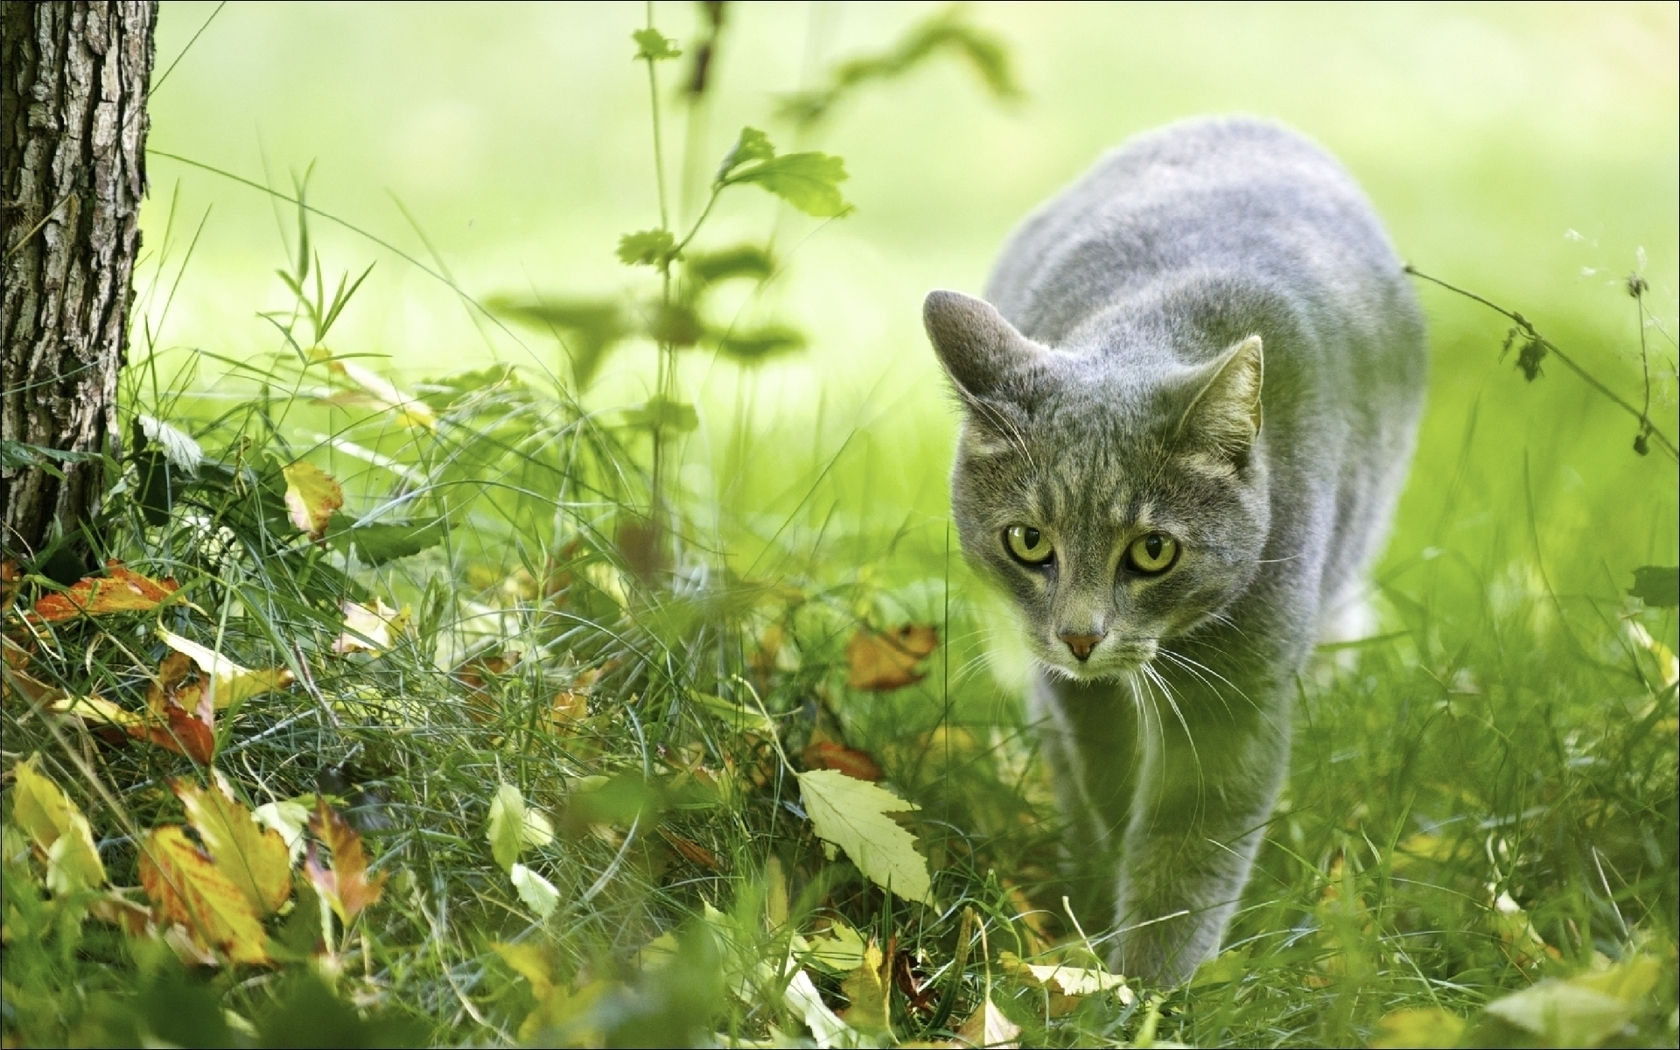 49001 download wallpaper Animals, Cats screensavers and pictures for free